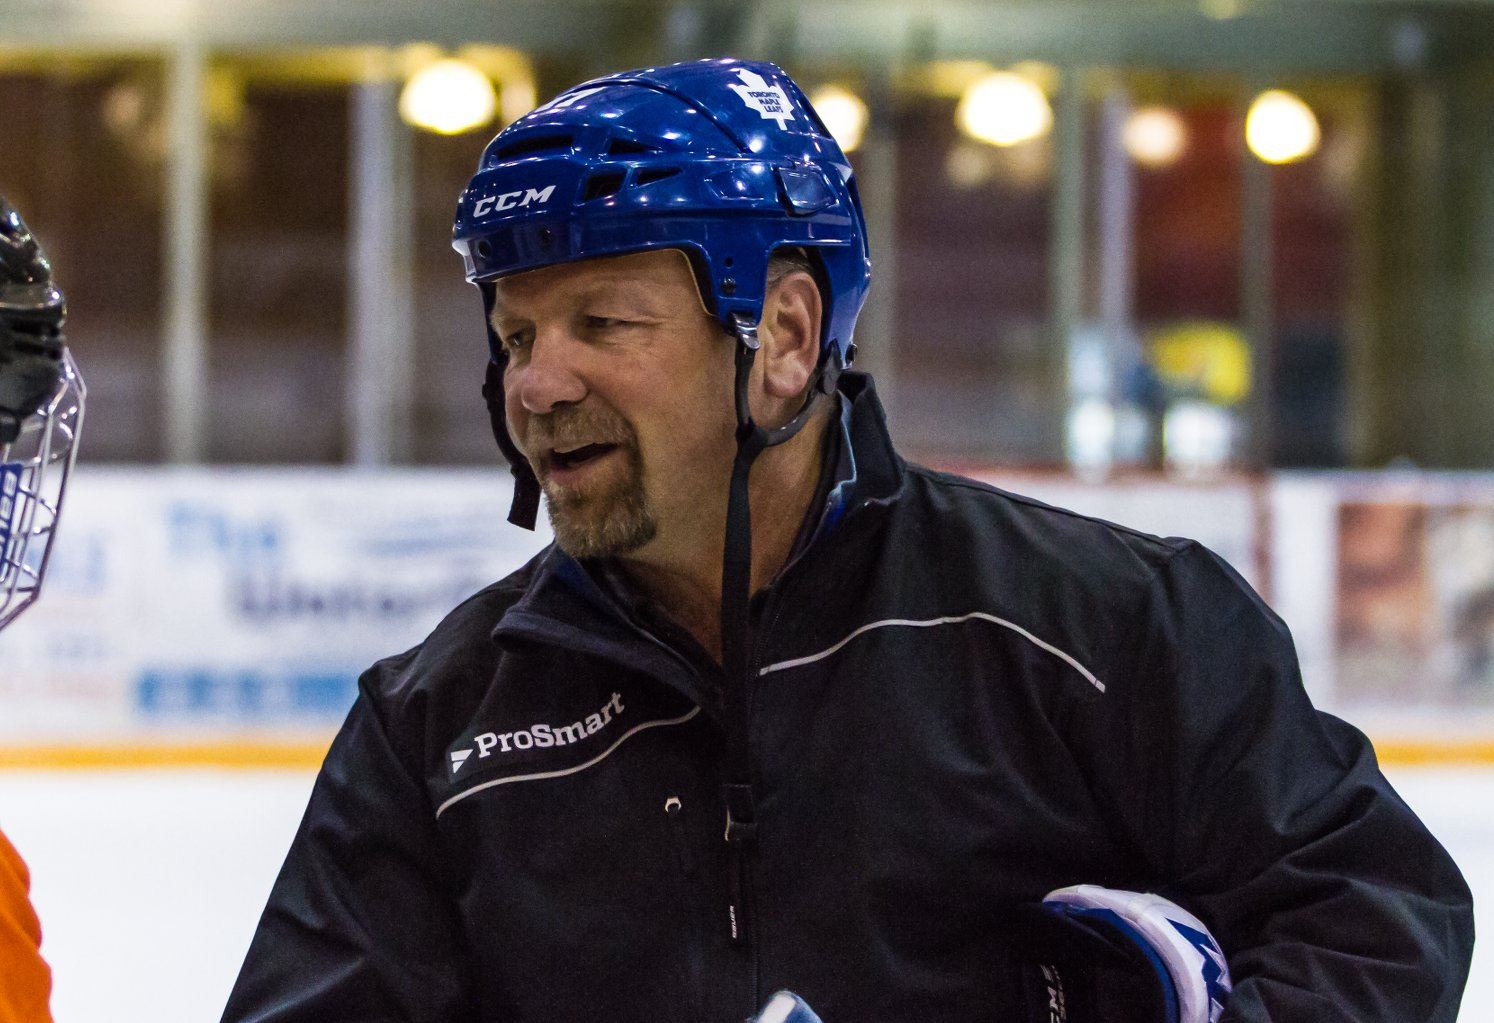 Wendel Clark - 15 Season NHL Veteran'Sportgo gives me a chance to give back to the game I love and be a part of something new and innovative. It's exciting to now have an online system that keeps everyone on the same page.'